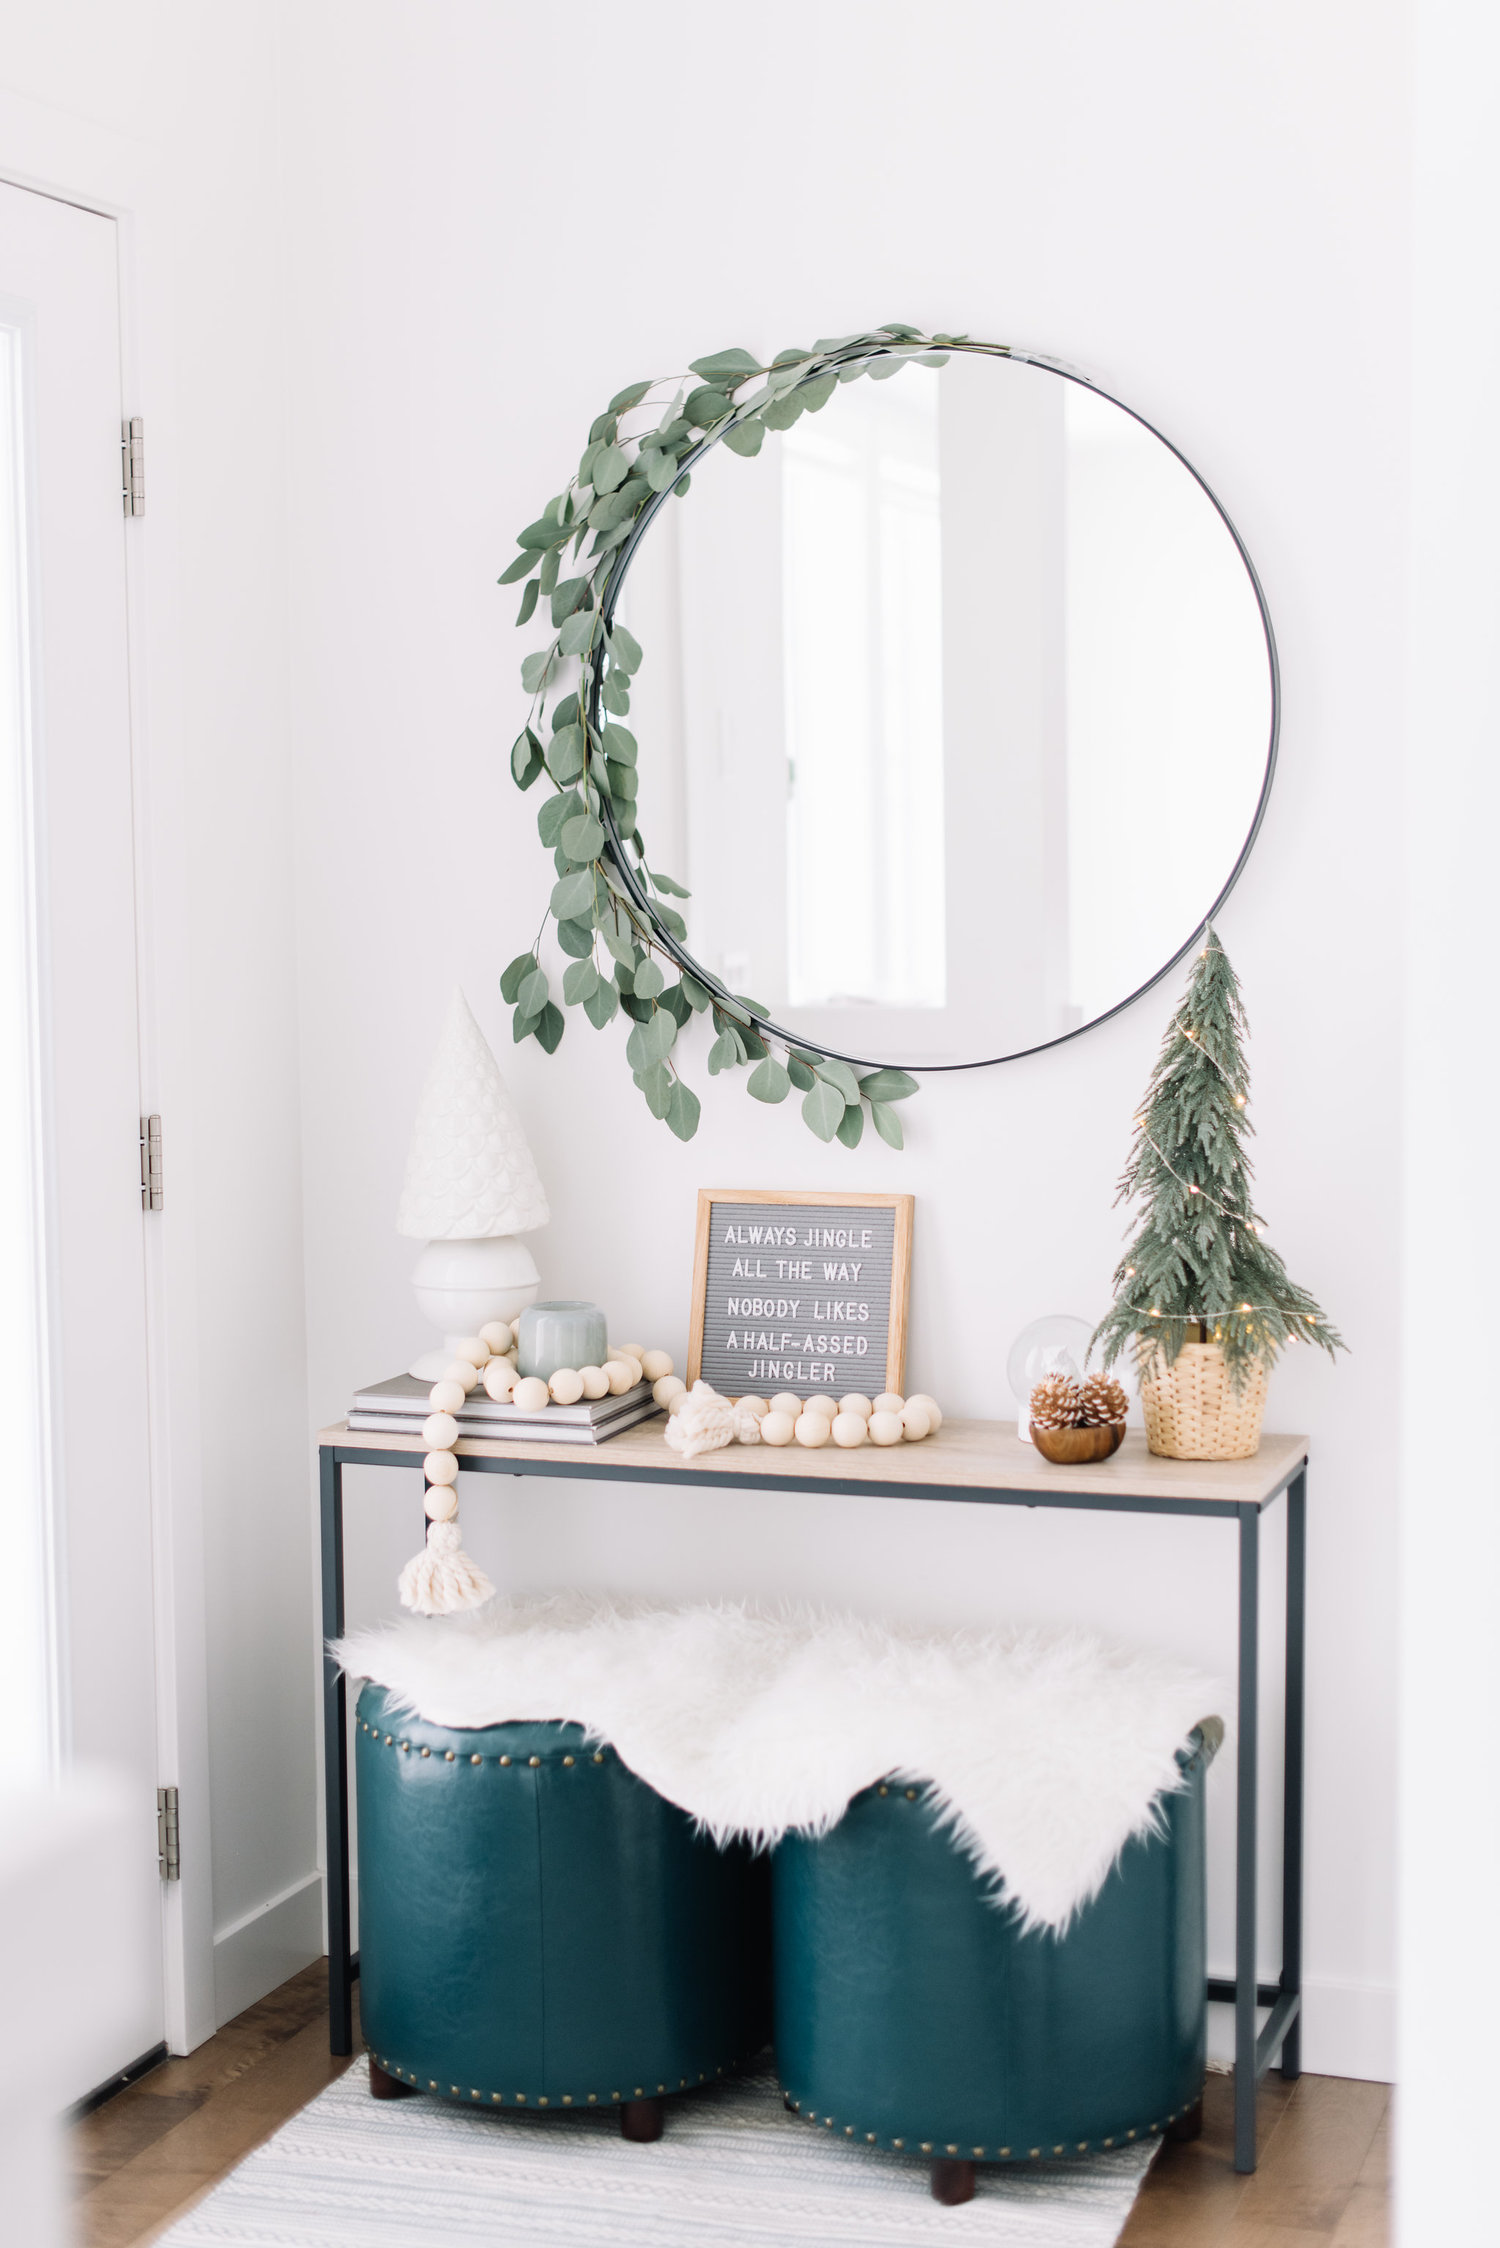 eucalyptus+around+mirror+holiday+decor.jpg